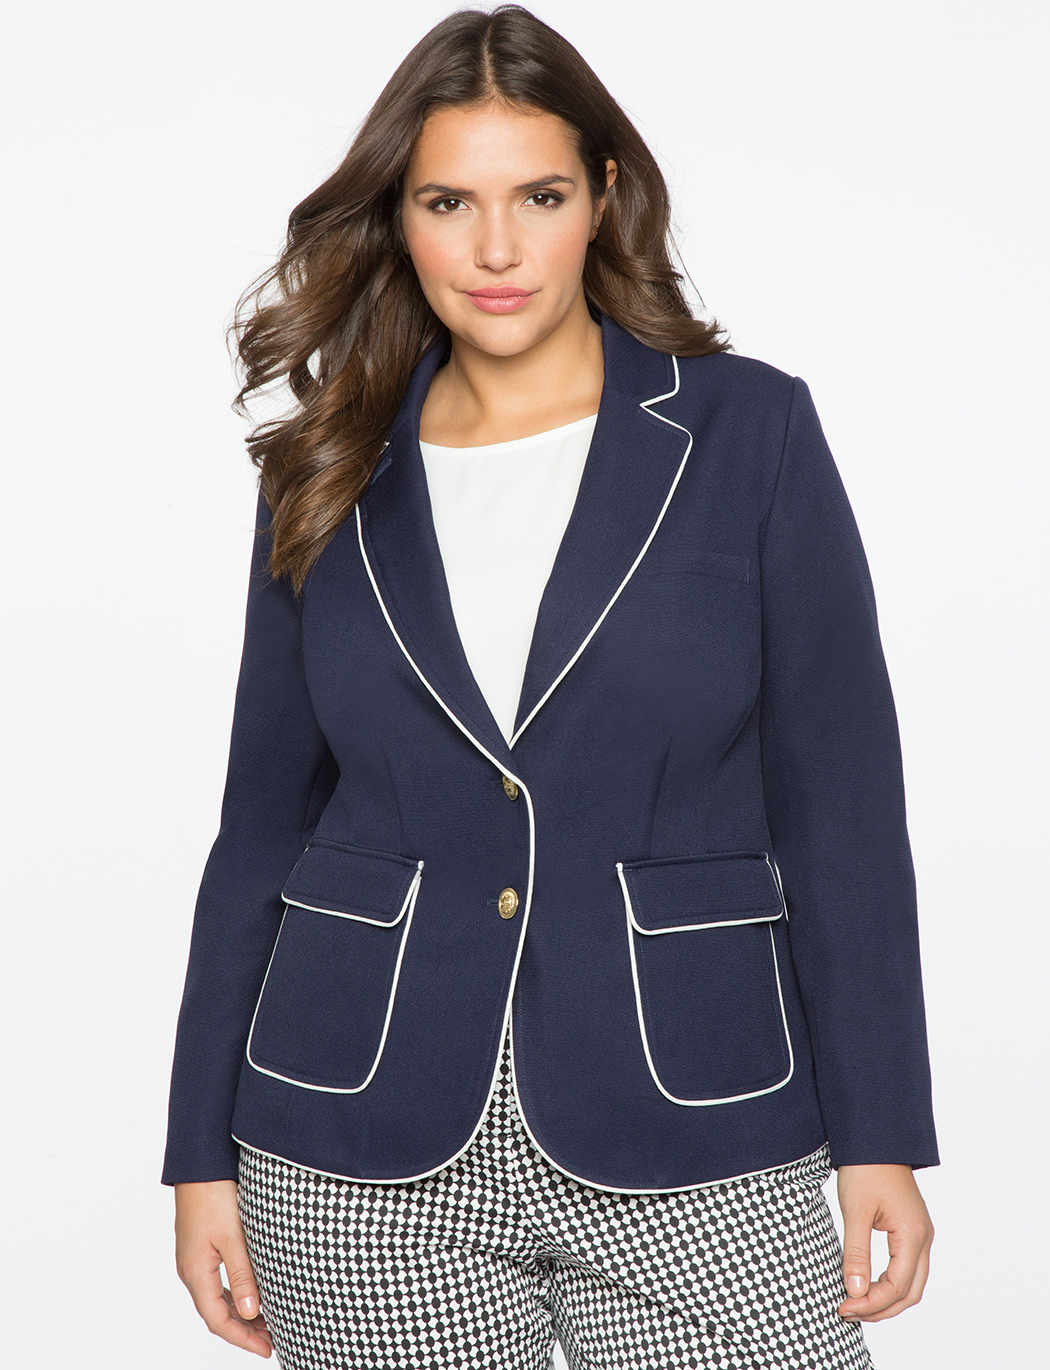 Shop women's plus size blazers on sale at Eddie Bauer, a legend in American sportswear. Explore our latest selection of plus size blazers for women. % satisfaction guaranteed since